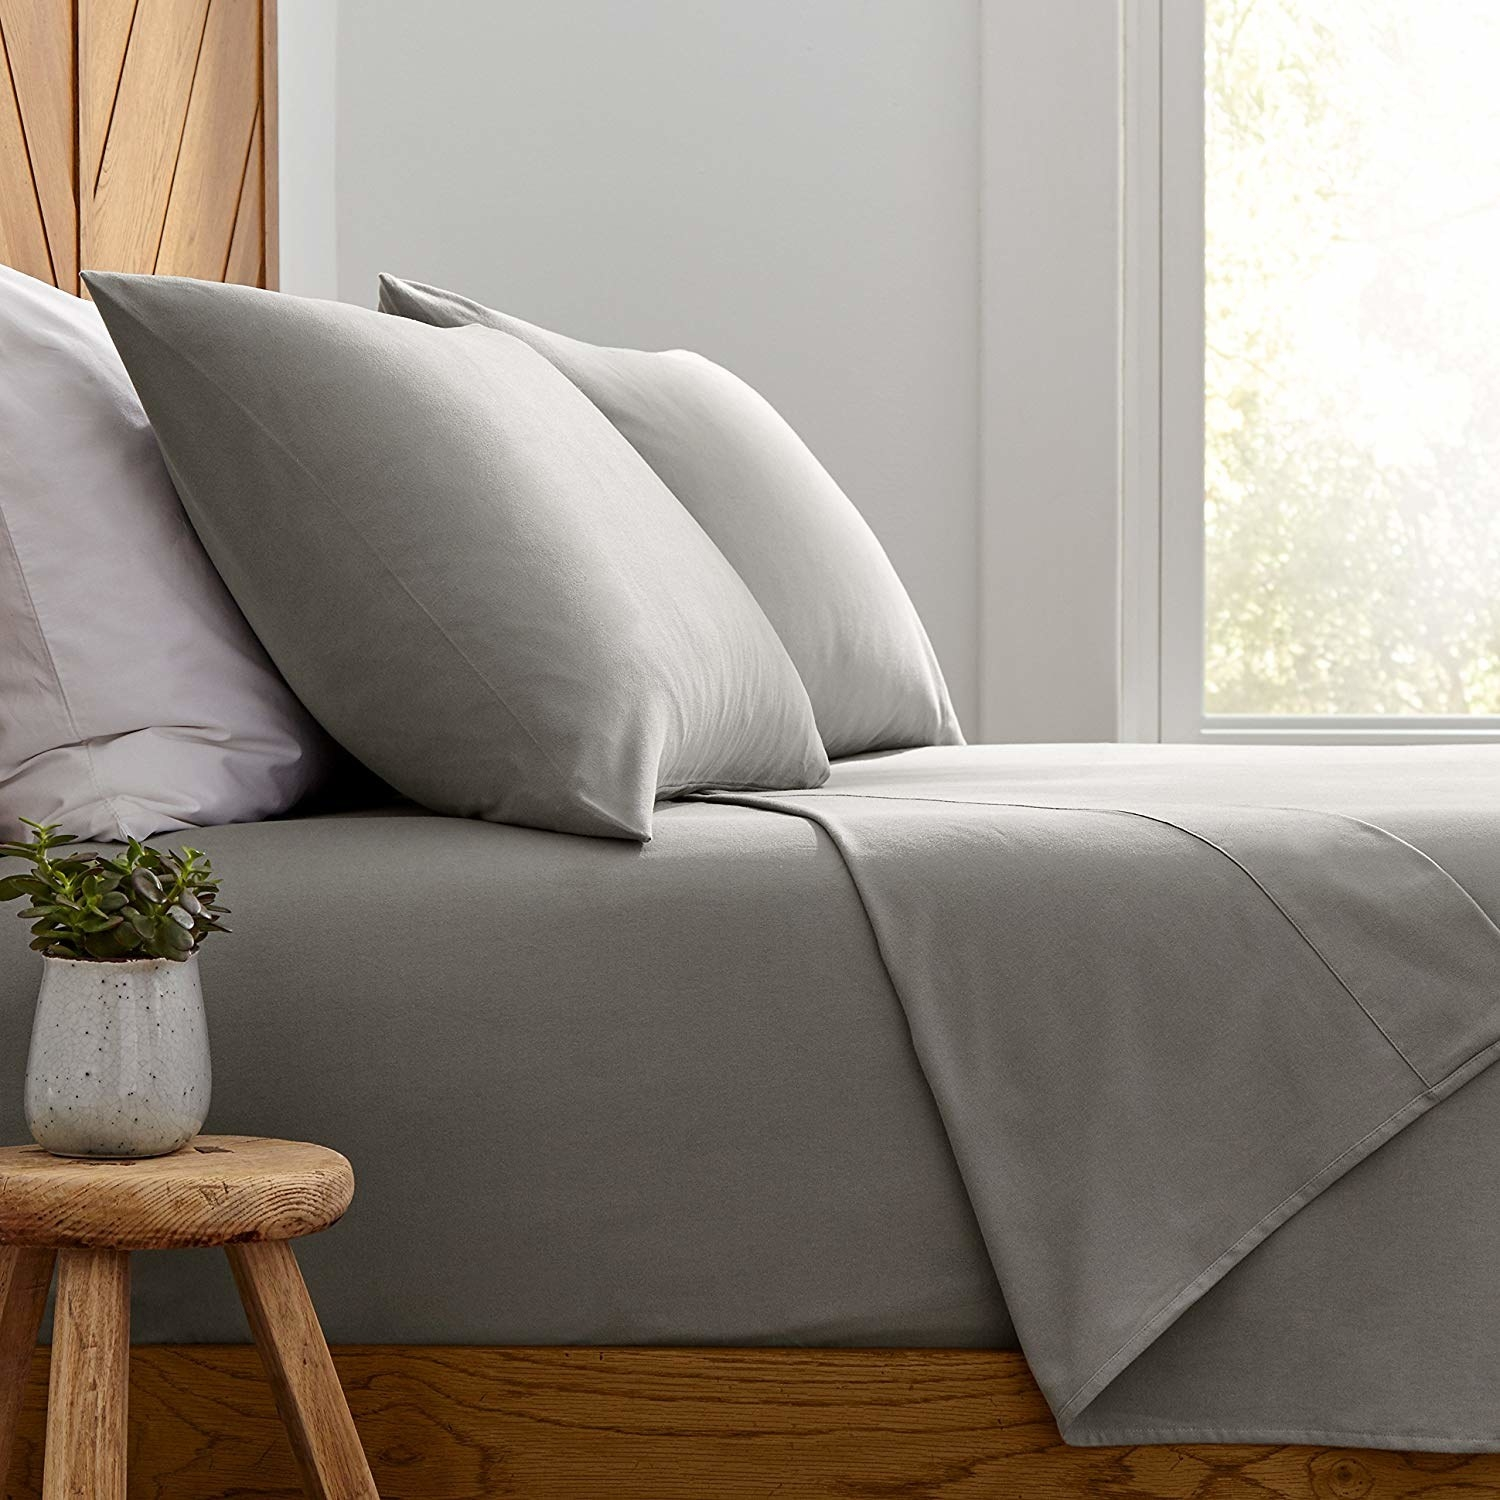 The sheets in grey on a bed